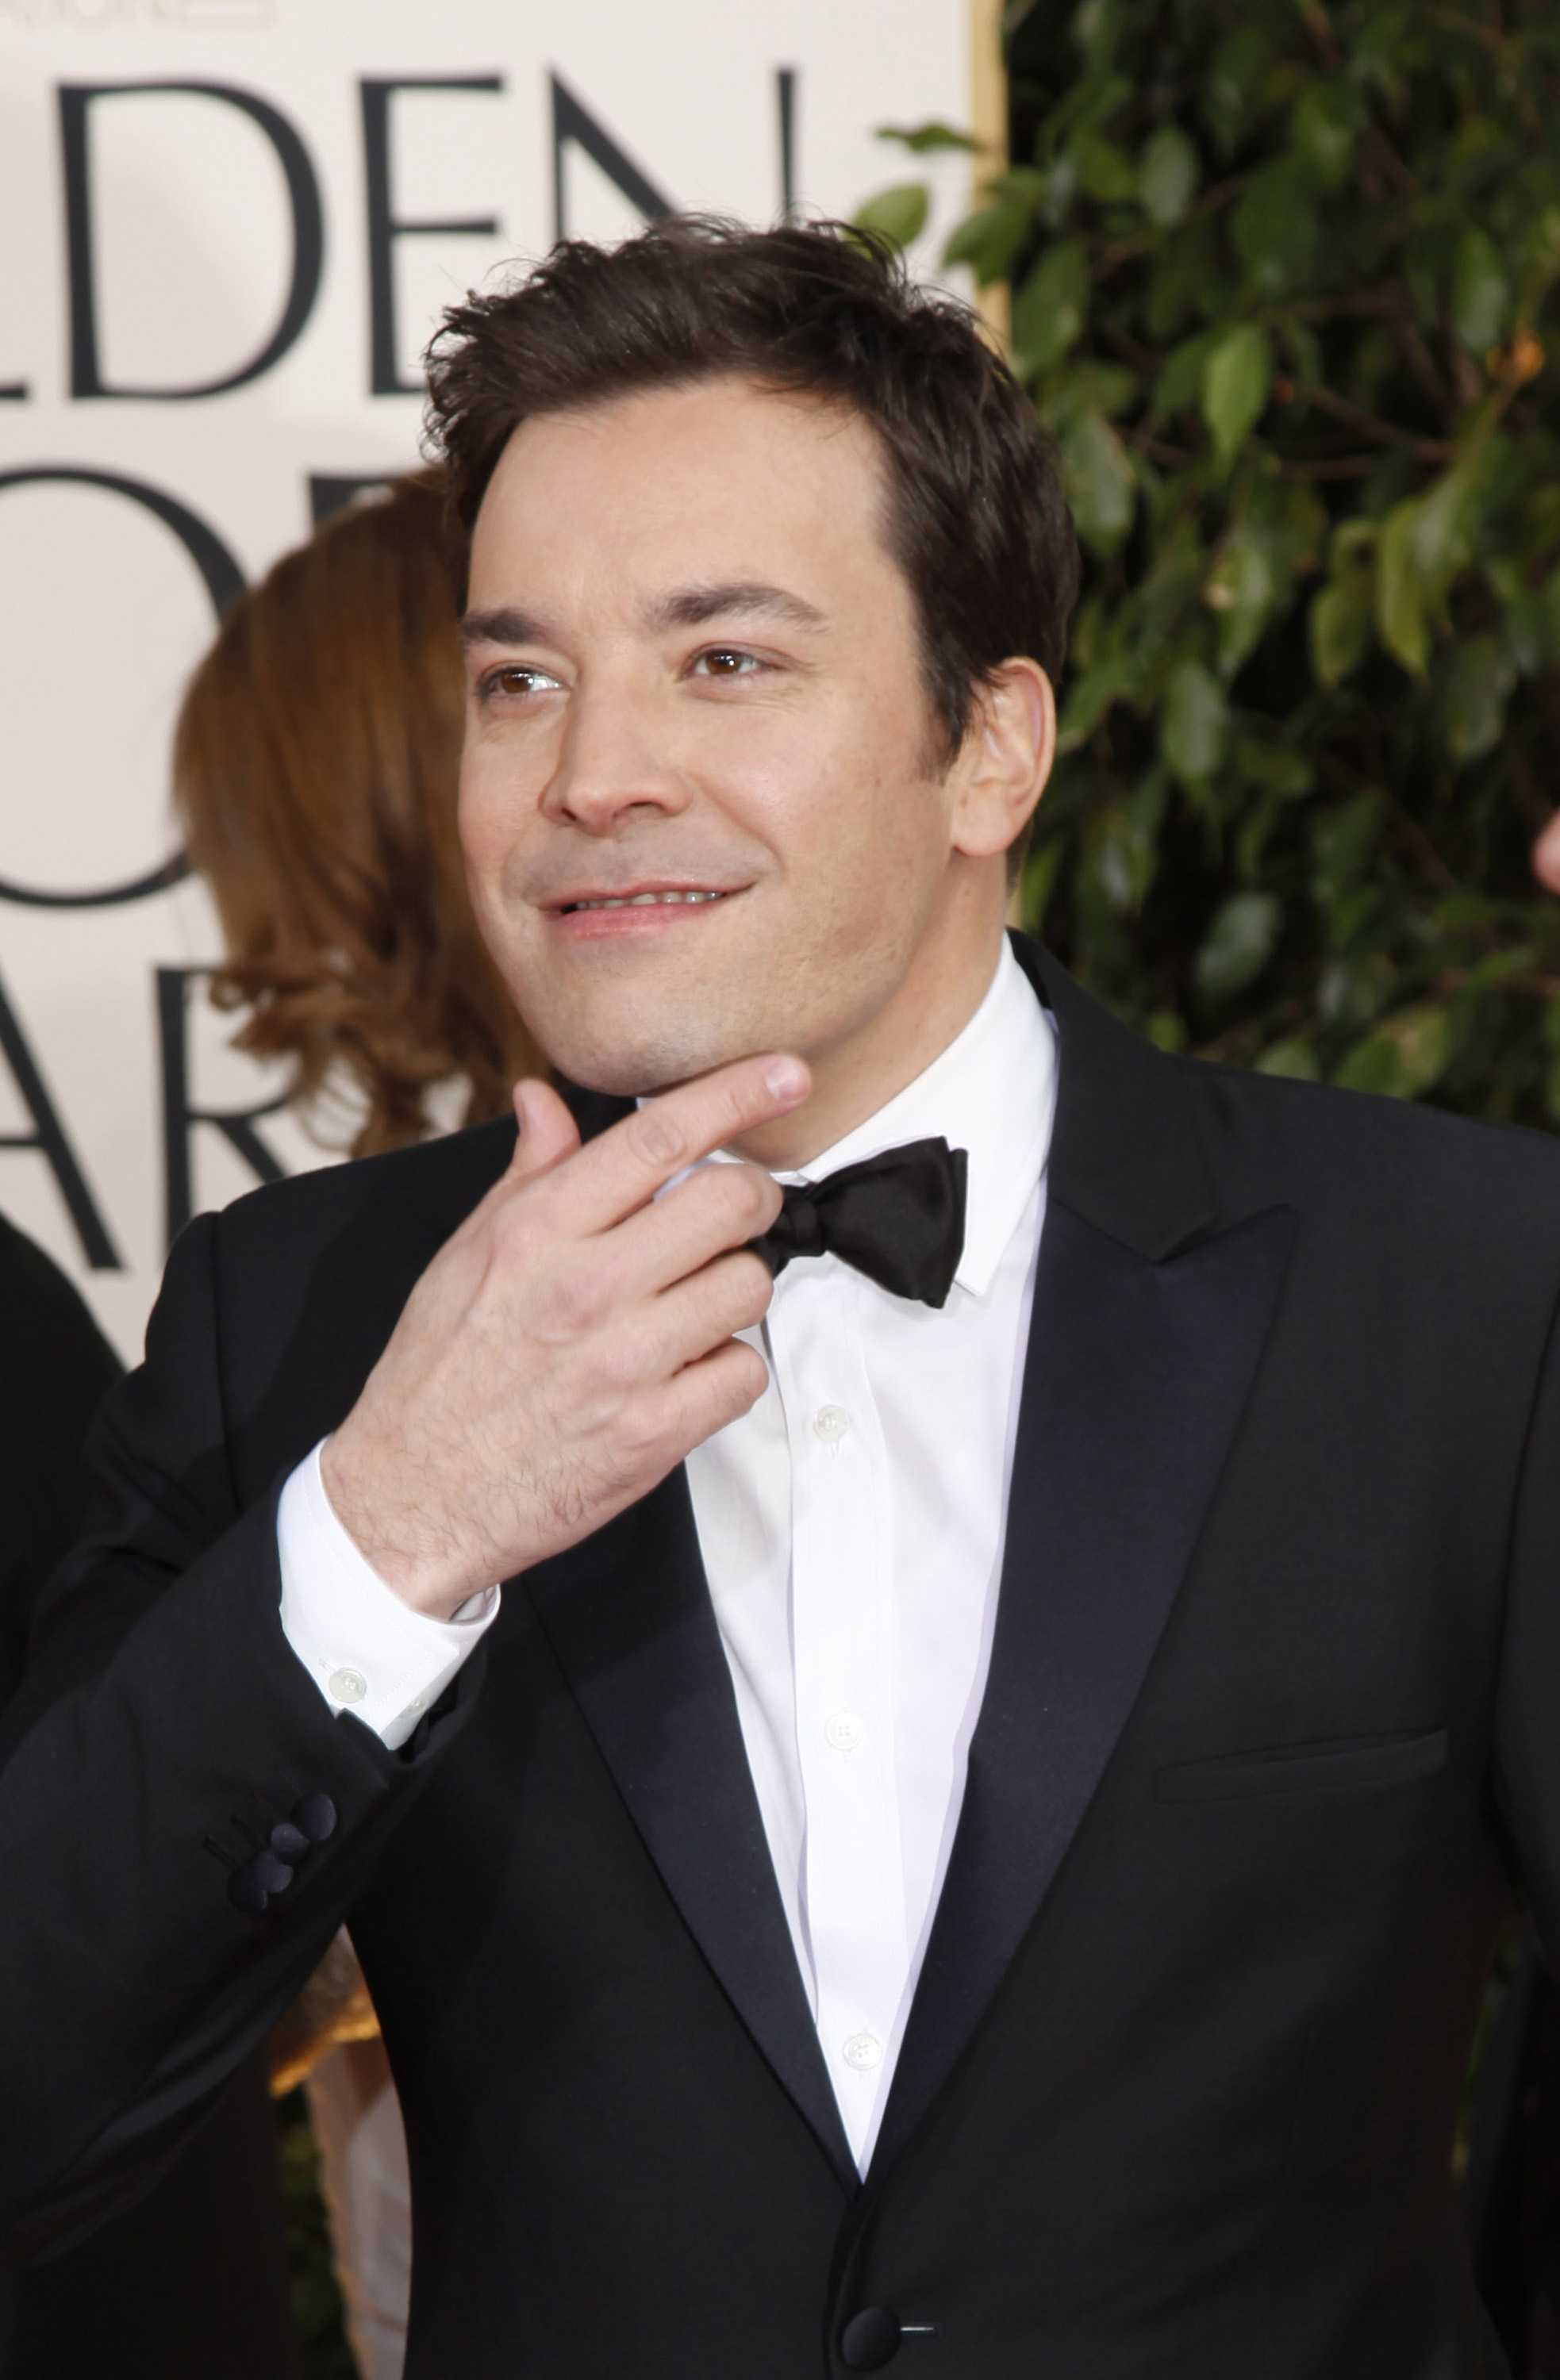 Jimmy Fallon arrives for the 70th Annual Golden Globe Awards show at the Beverly Hilton Hotel on Sunday, January 13, 2013, in Beverly Hills, California. (Kirk McKoy/Los Angeles Times/MCT)